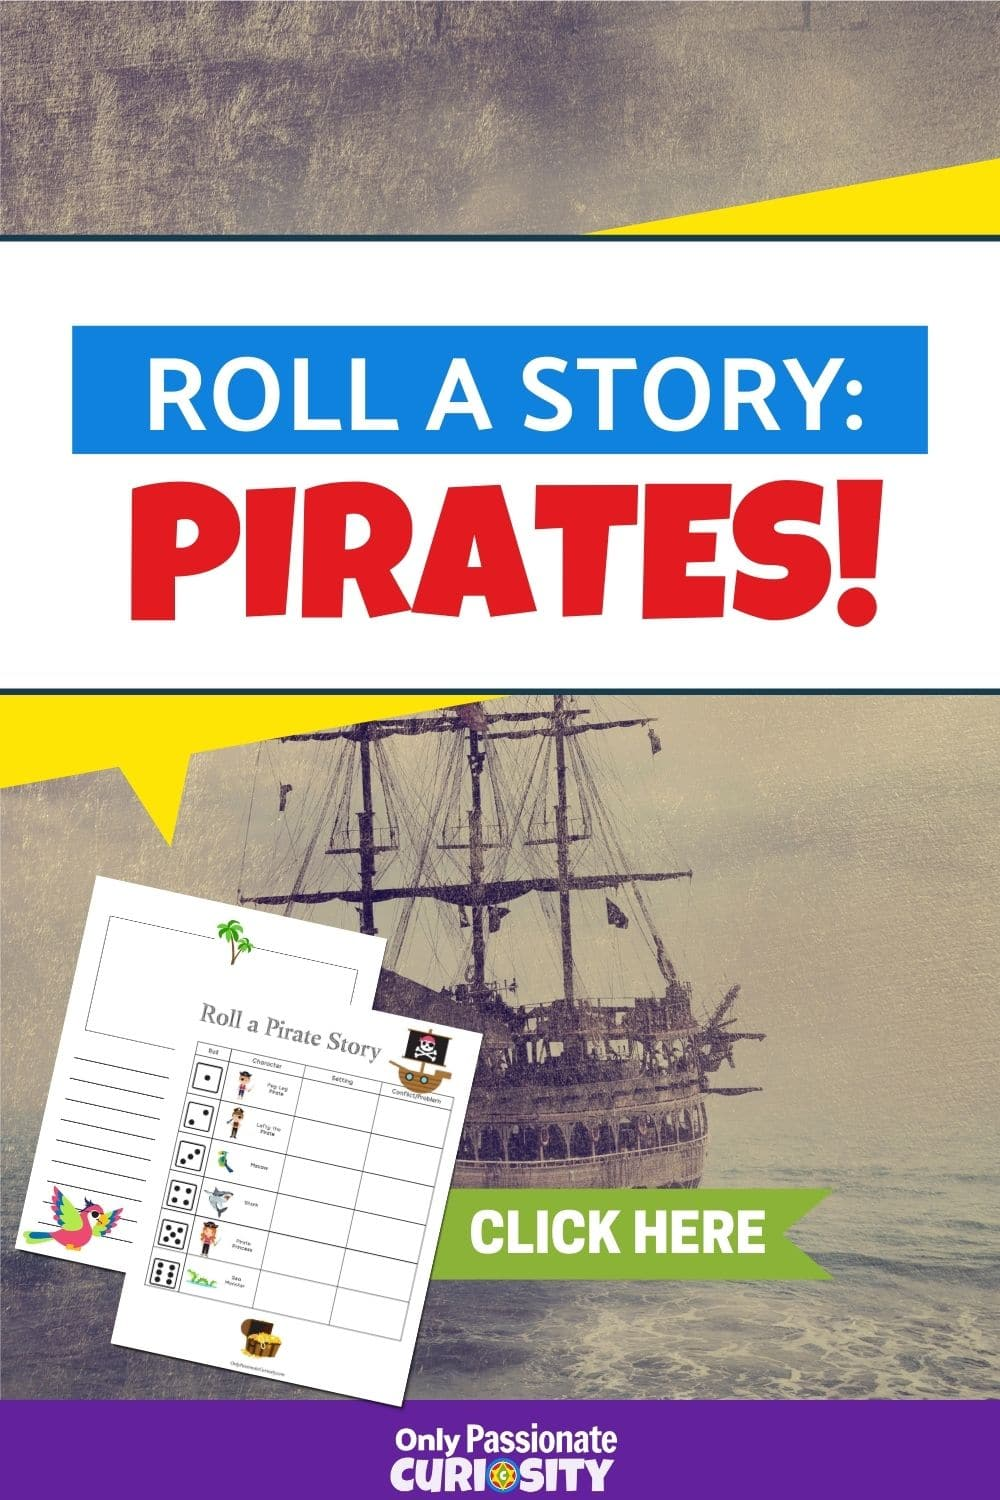 Celebrate Talk Like a Pirate Day (or any day!) with this fun roll-a-story activity! It's a perfect way to sneak in some creative writing with your kids!